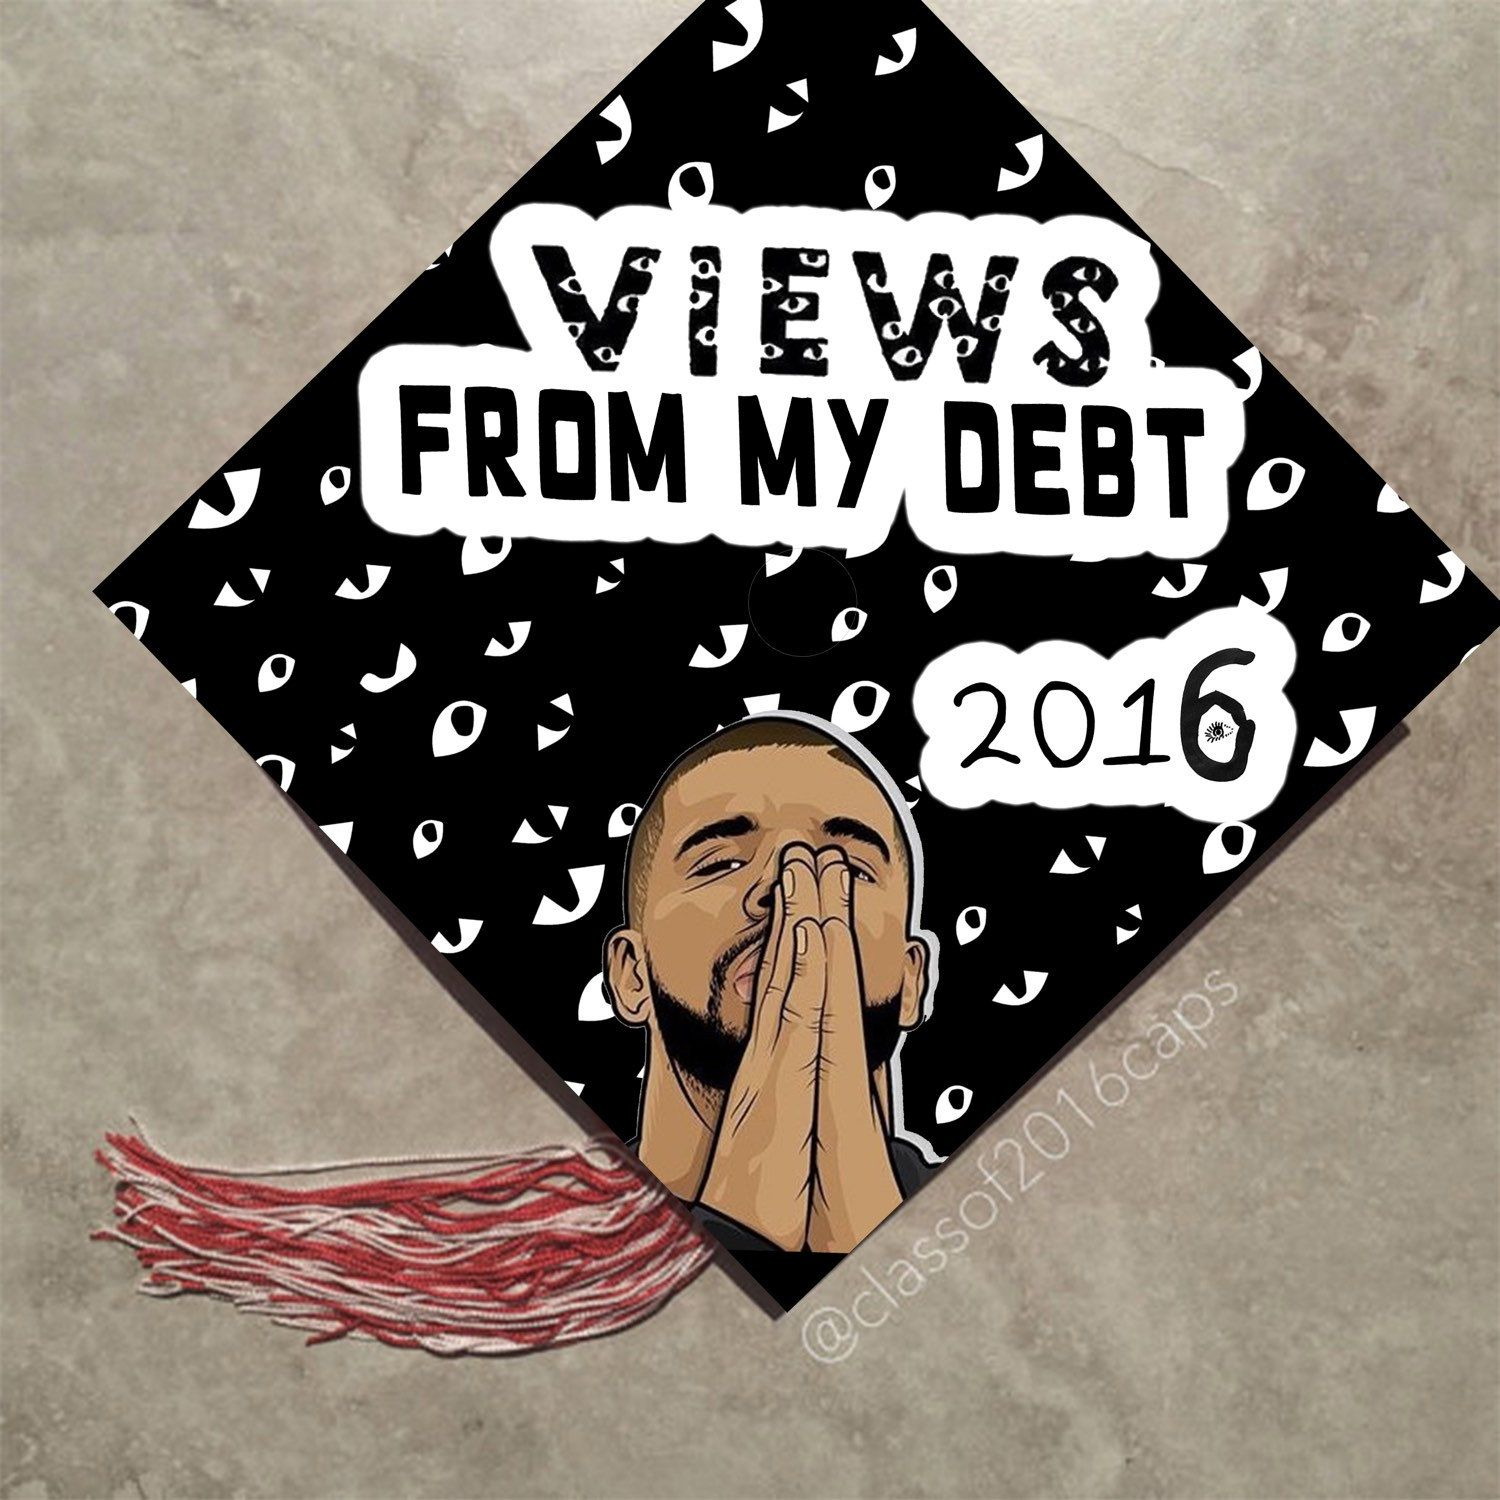 High School Graduation Cap Decoration Ideas For Guys ...